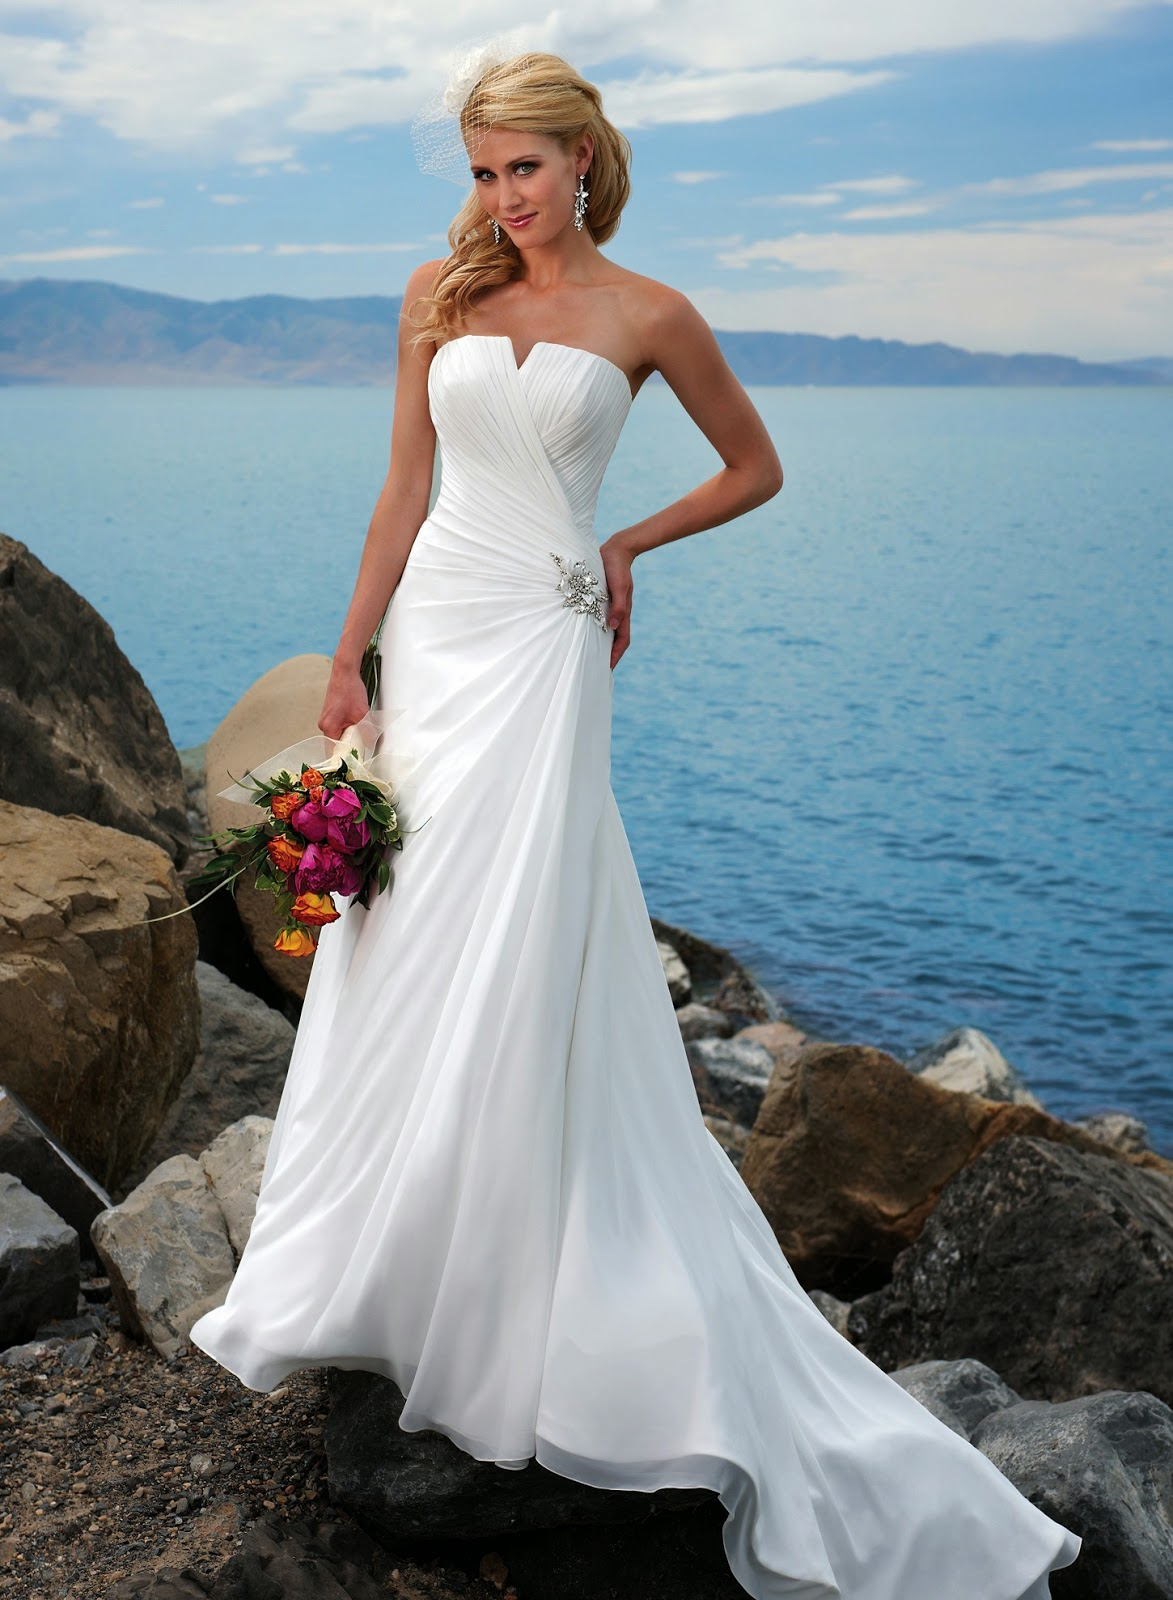 WEDDING PLANNER 808 BLOG: Wedding Dress Styles for a Hawaii Wedding